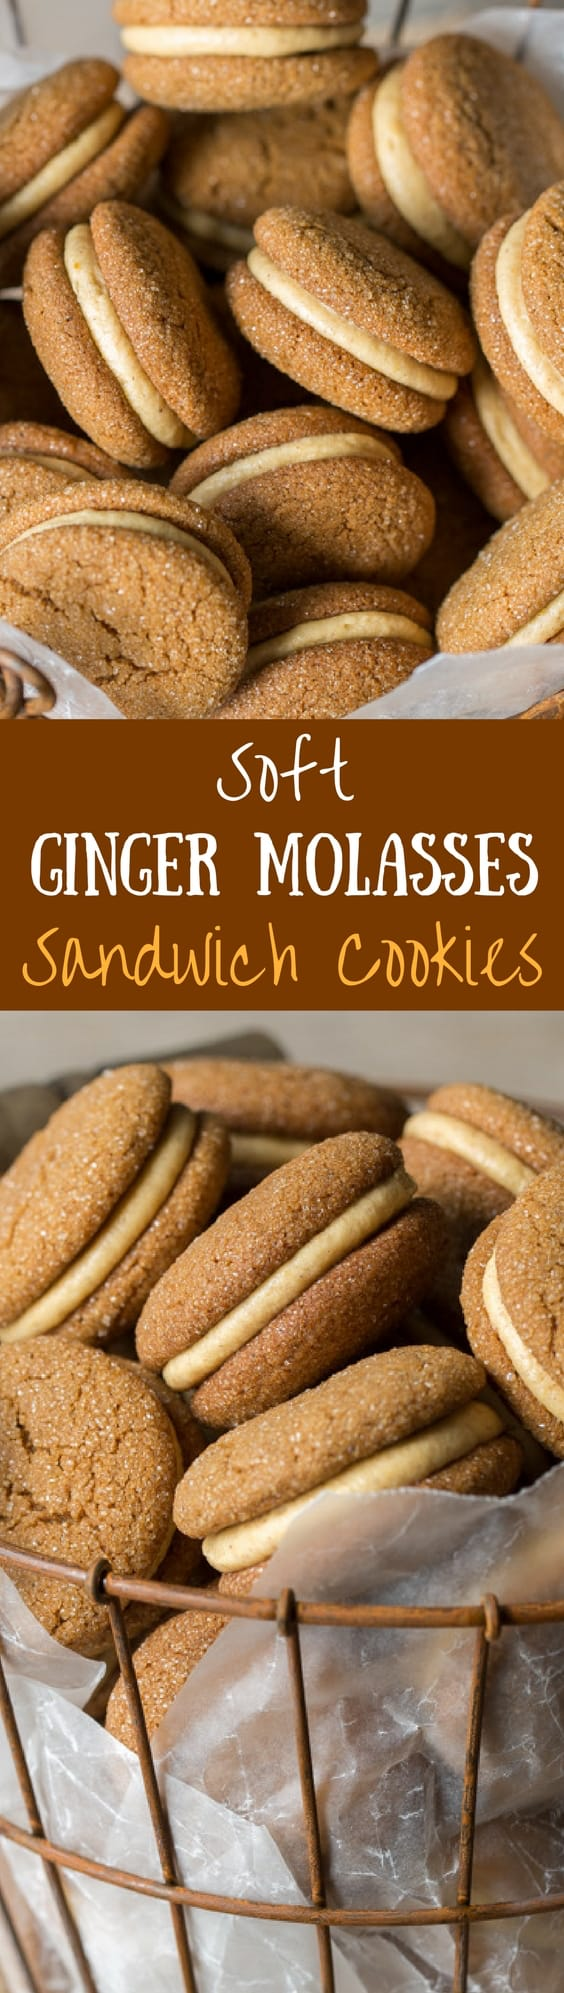 Soft Ginger Molasses Cookies with Pumpkin-Butter Buttercream | www.savingdessert.com